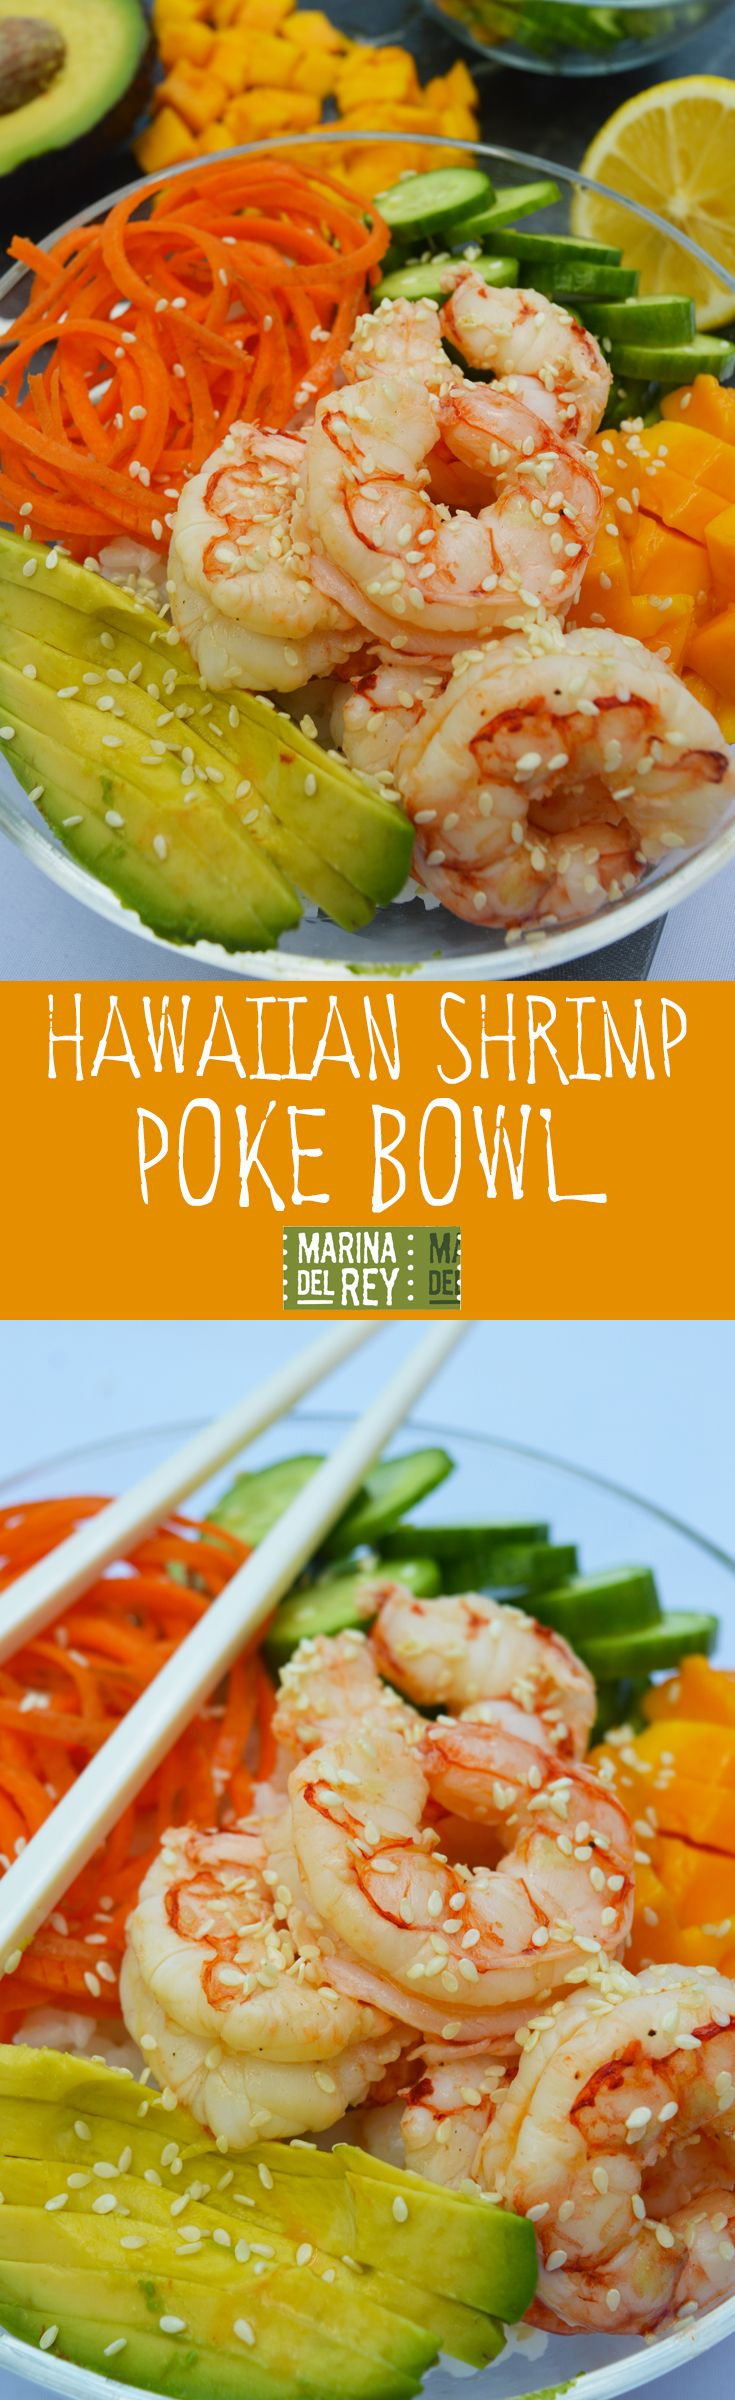 Easy Hawaiian Shrimp Poke Bowl [Recipe]